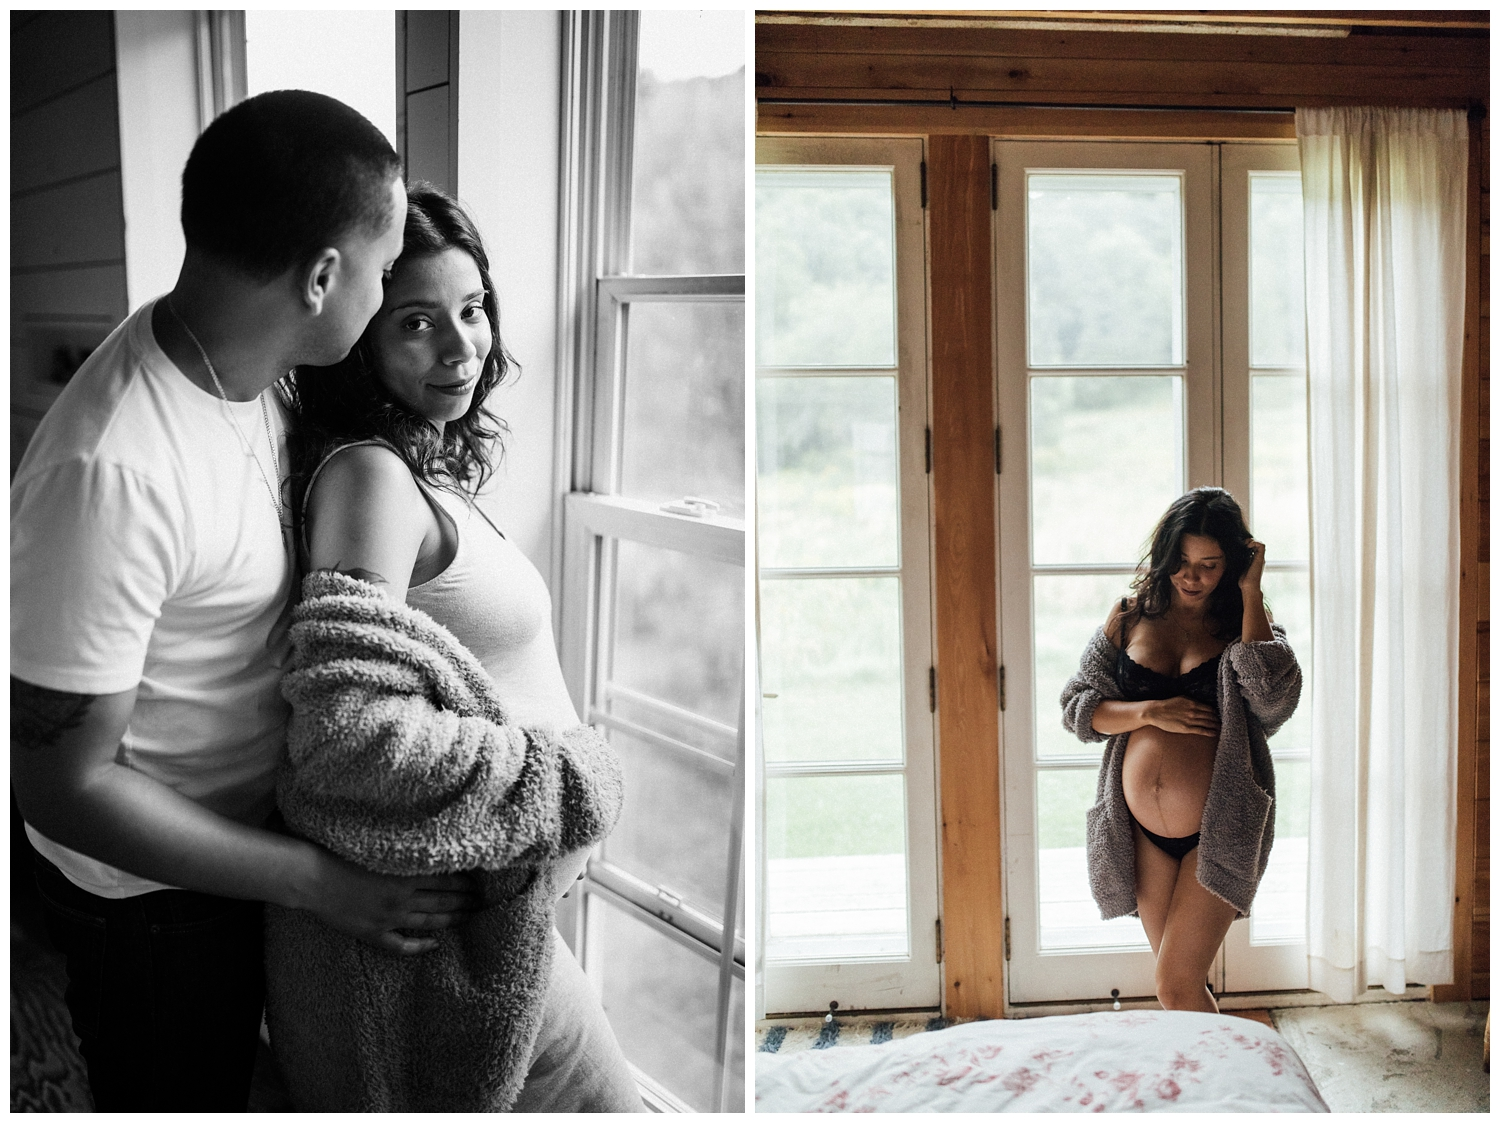 Karla and David Perez Maternity Photoshoot at Home with jenFAIRCHILD Photography in Hudson Valley New York_0014.jpg